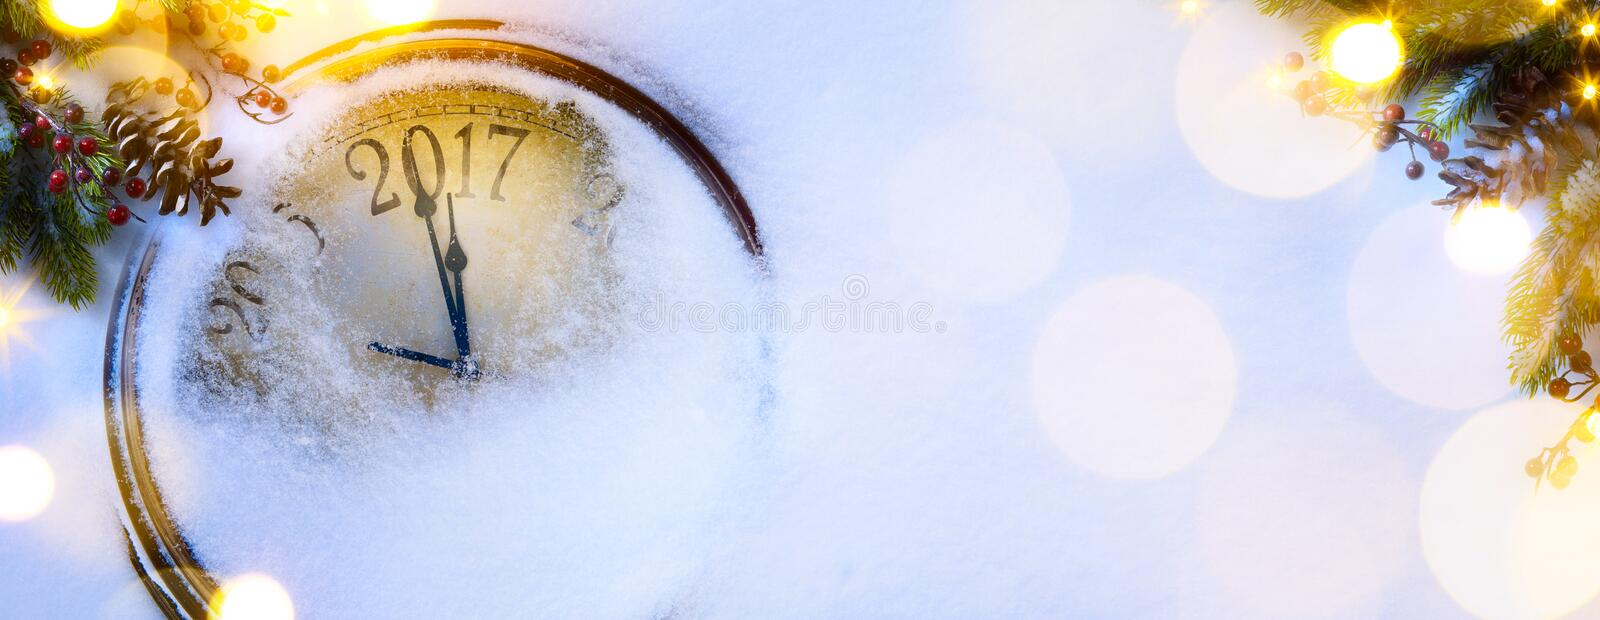 Art Christmas and happy new years eve background; 2017 royalty free stock photos